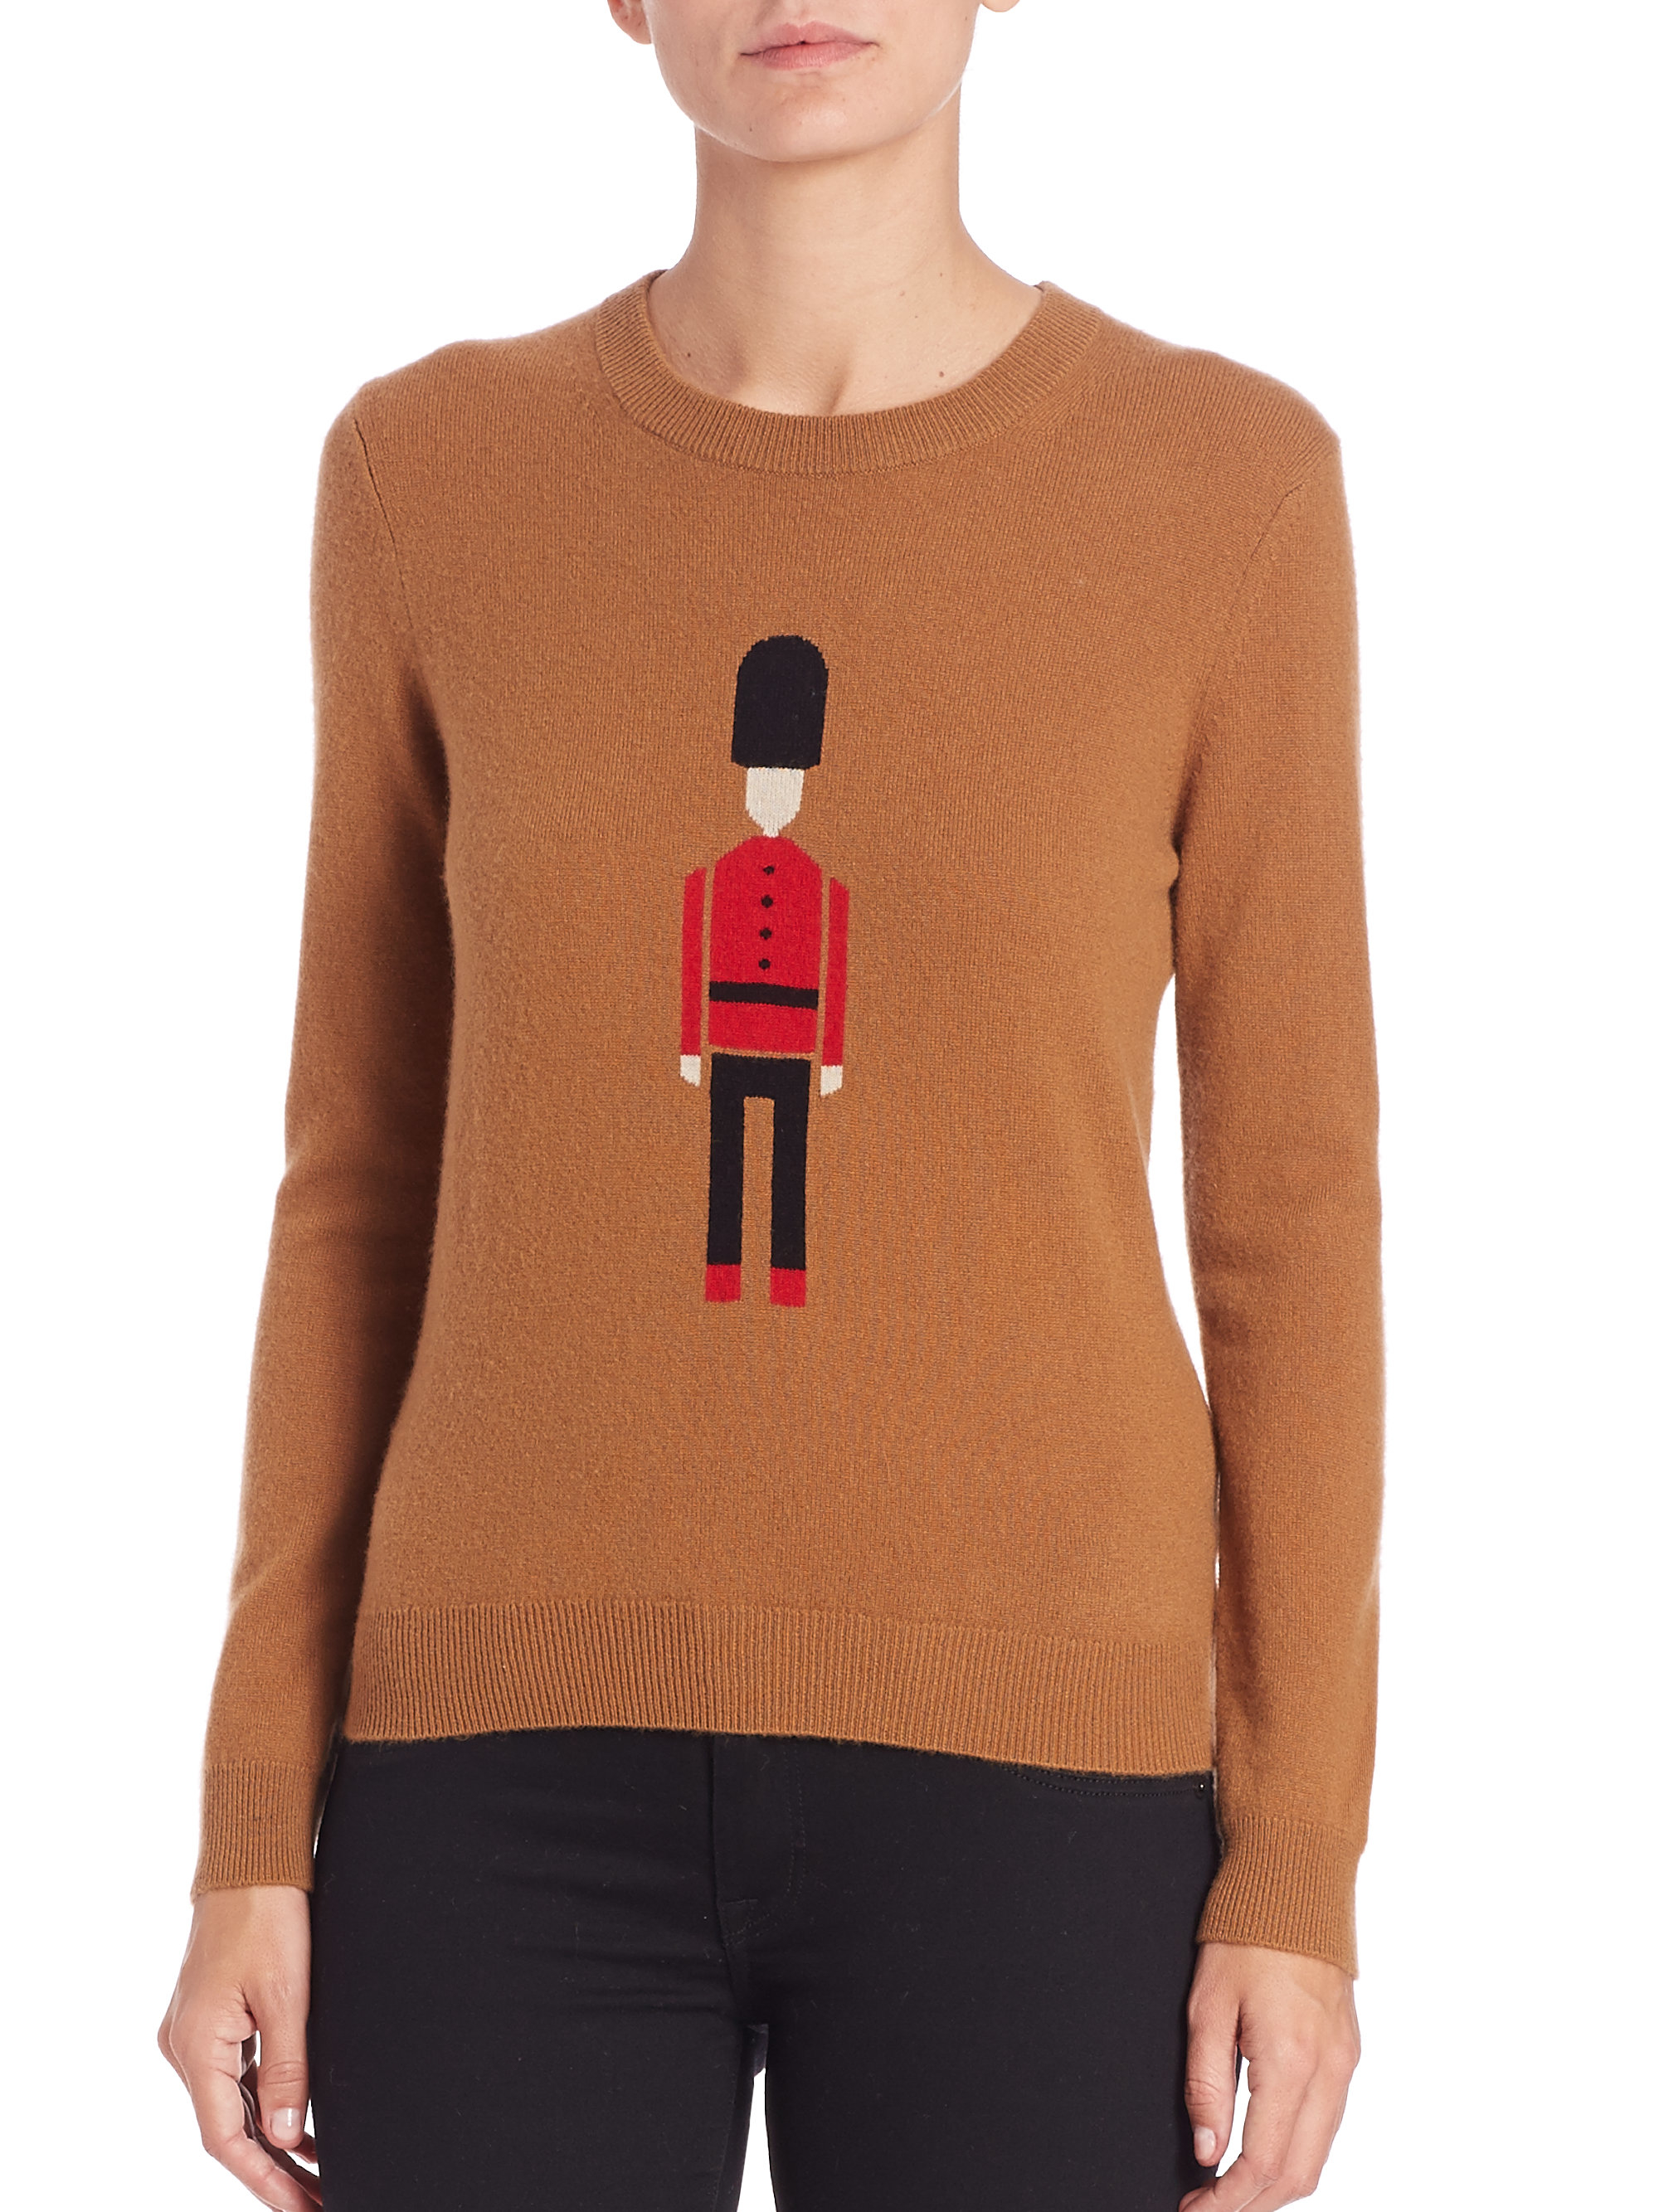 Burberry Toy Soldier Wool & Cashmere Sweater in Natural | Lyst